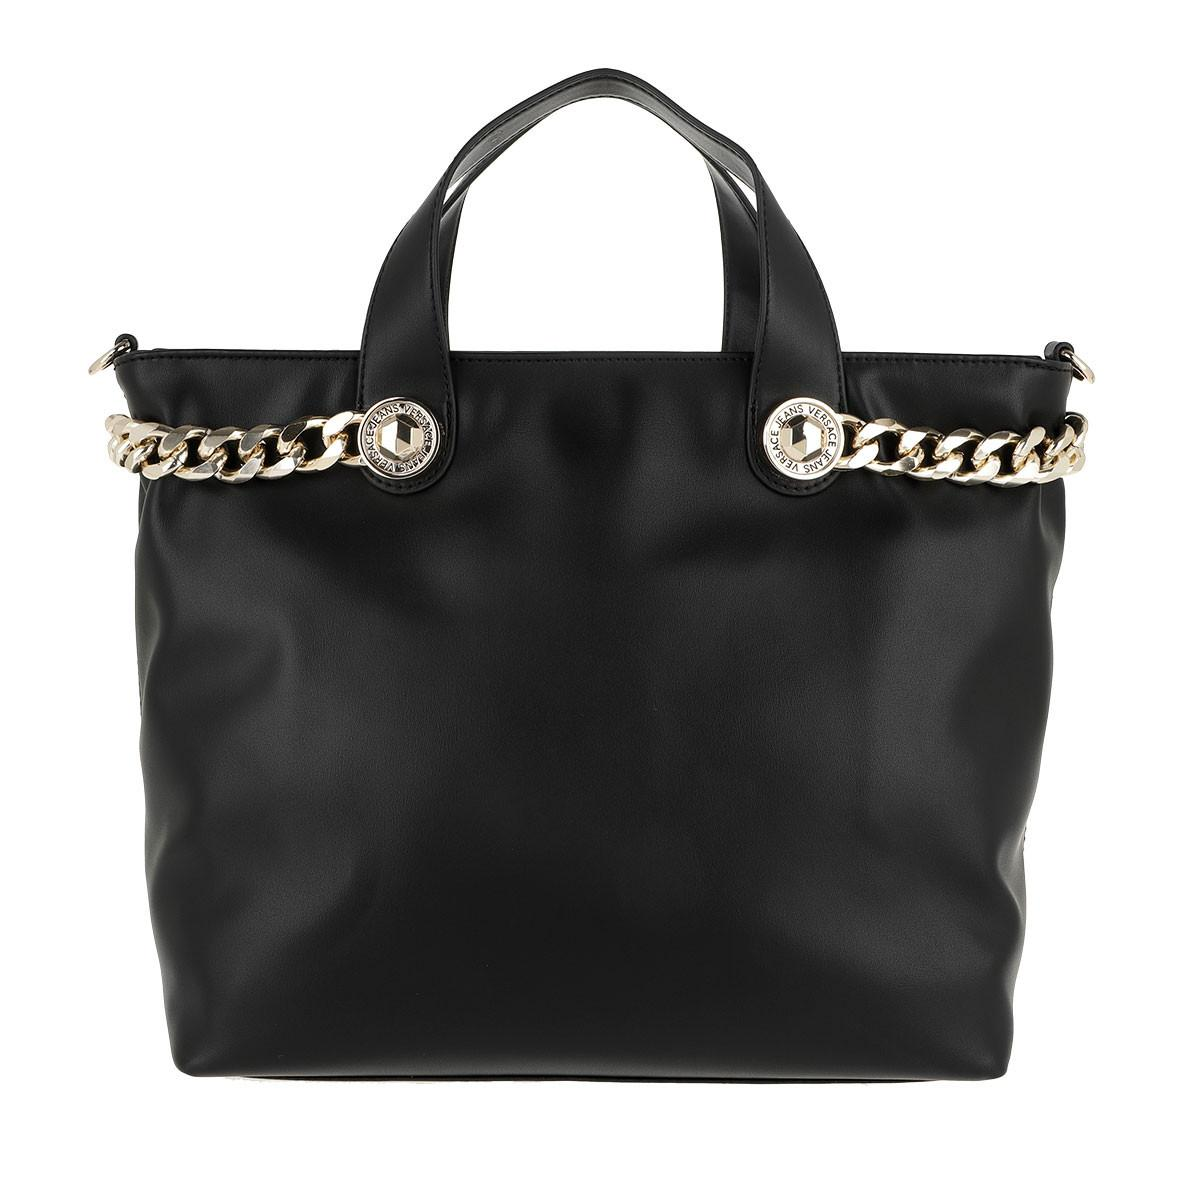 Versace Jeans Chain Shoulder Bag Black in Black - Lyst ba5ca3c668